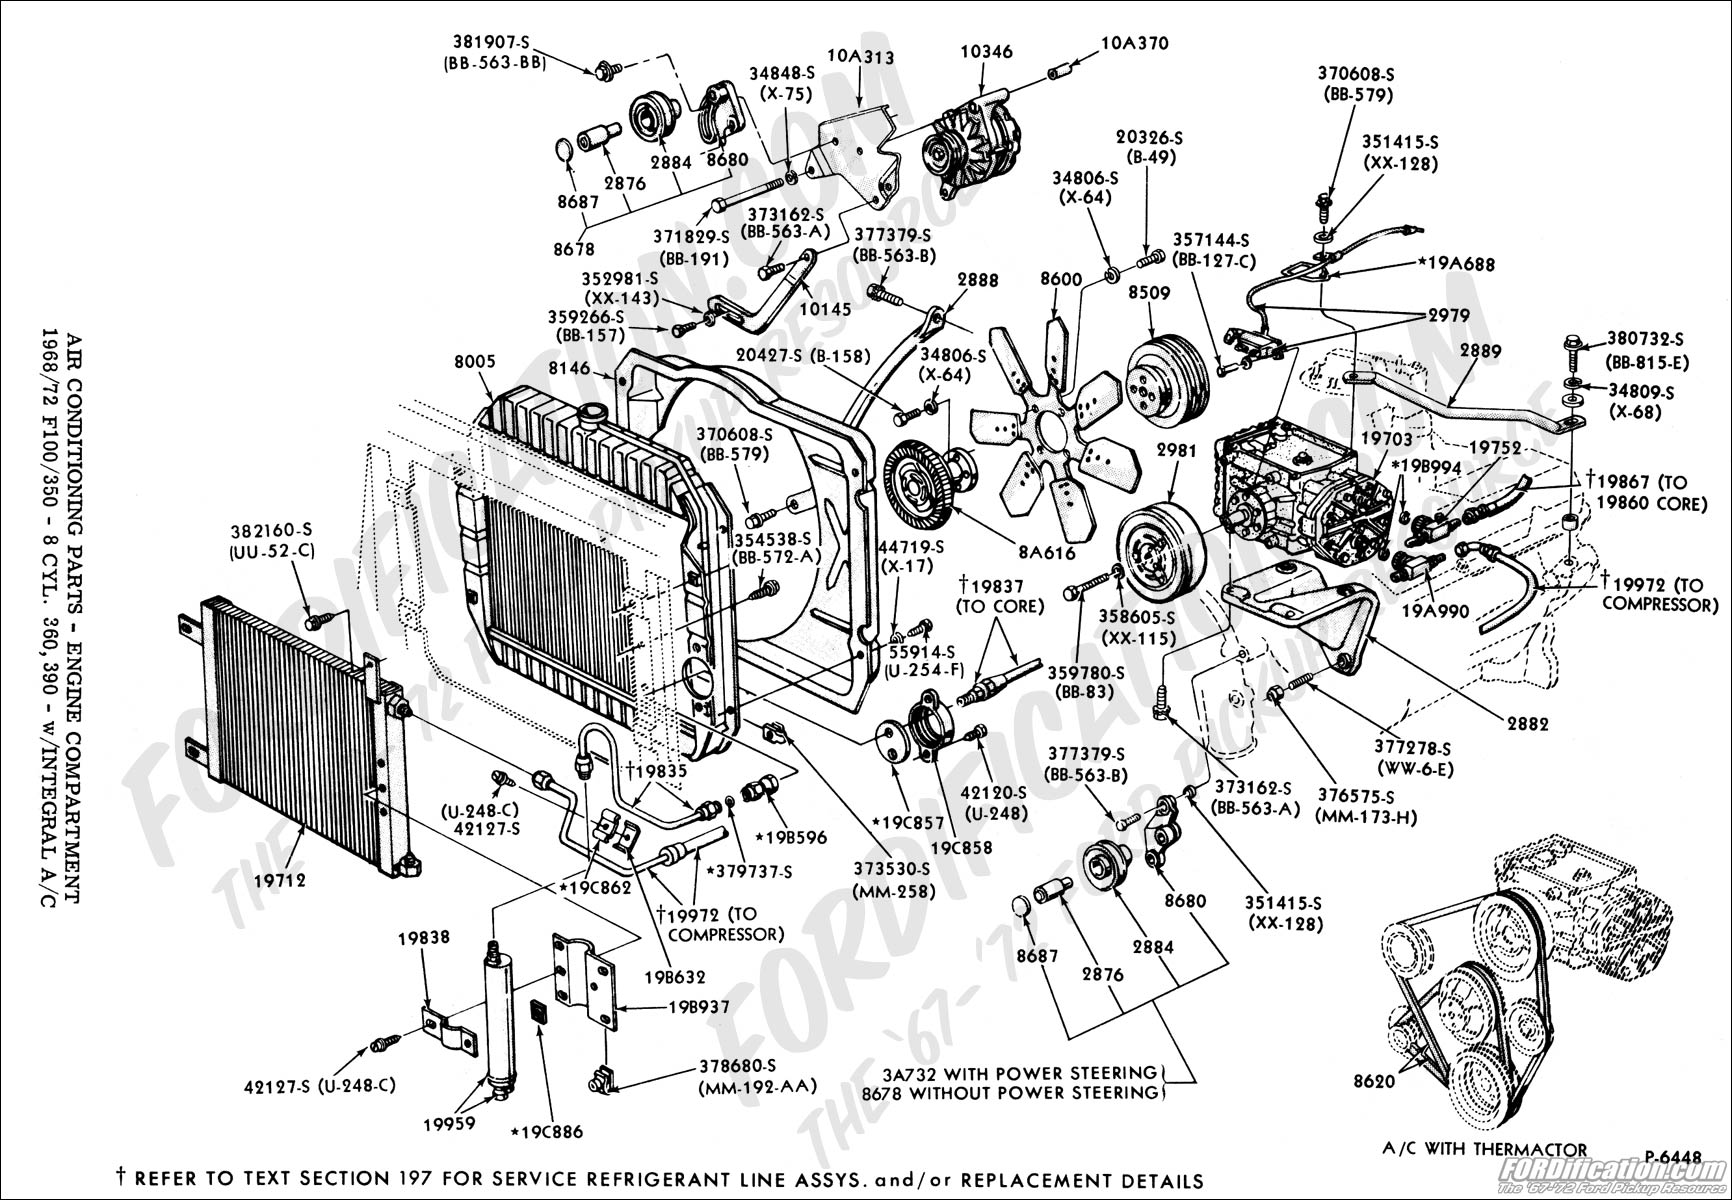 engine cooling system schematic